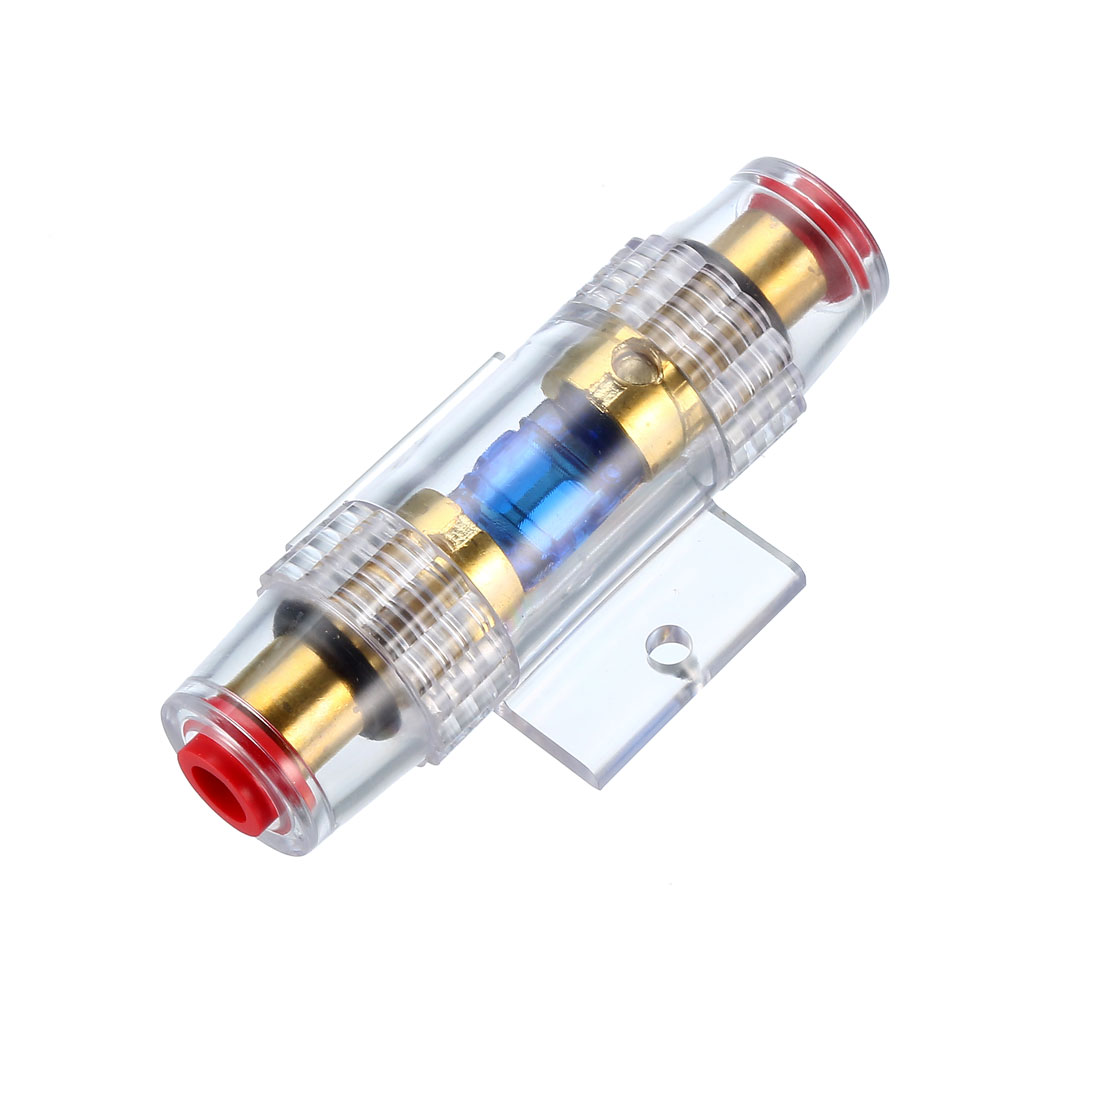 Inline Mini ANL Fuse Holder 4/8 Gauge AWG Distribution Block with 60A Fuse